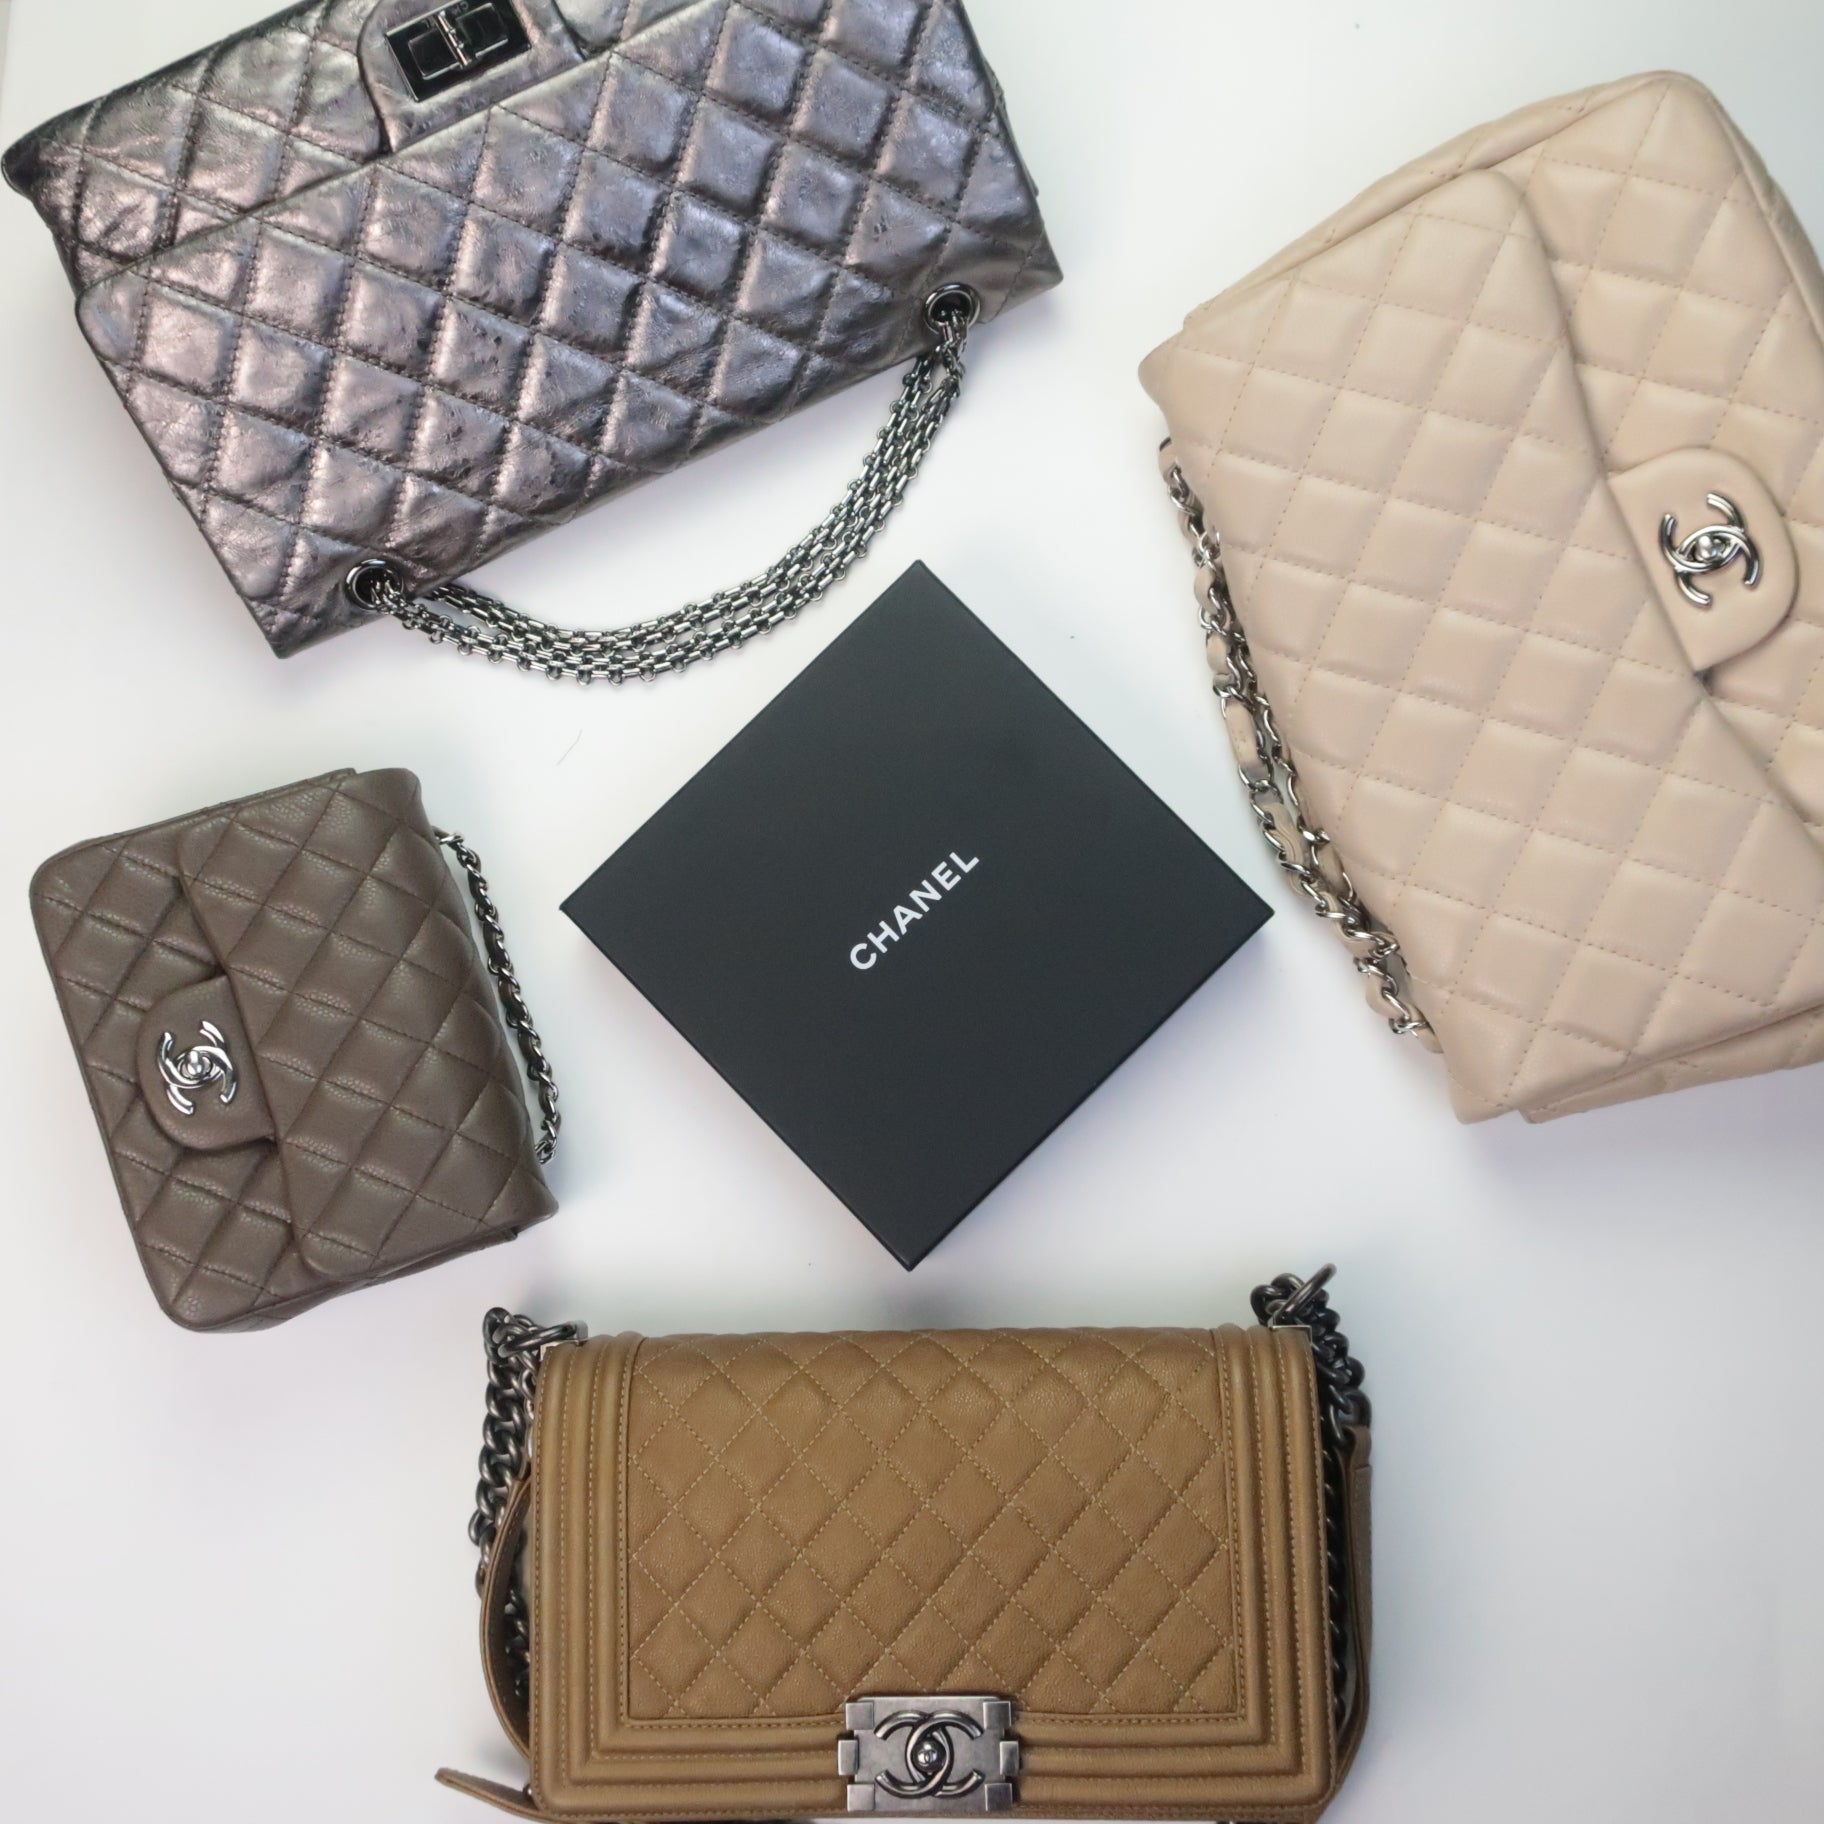 How Much Is Chanel? Chanel Price Guide  How Much Are Popular Chanel Purses?